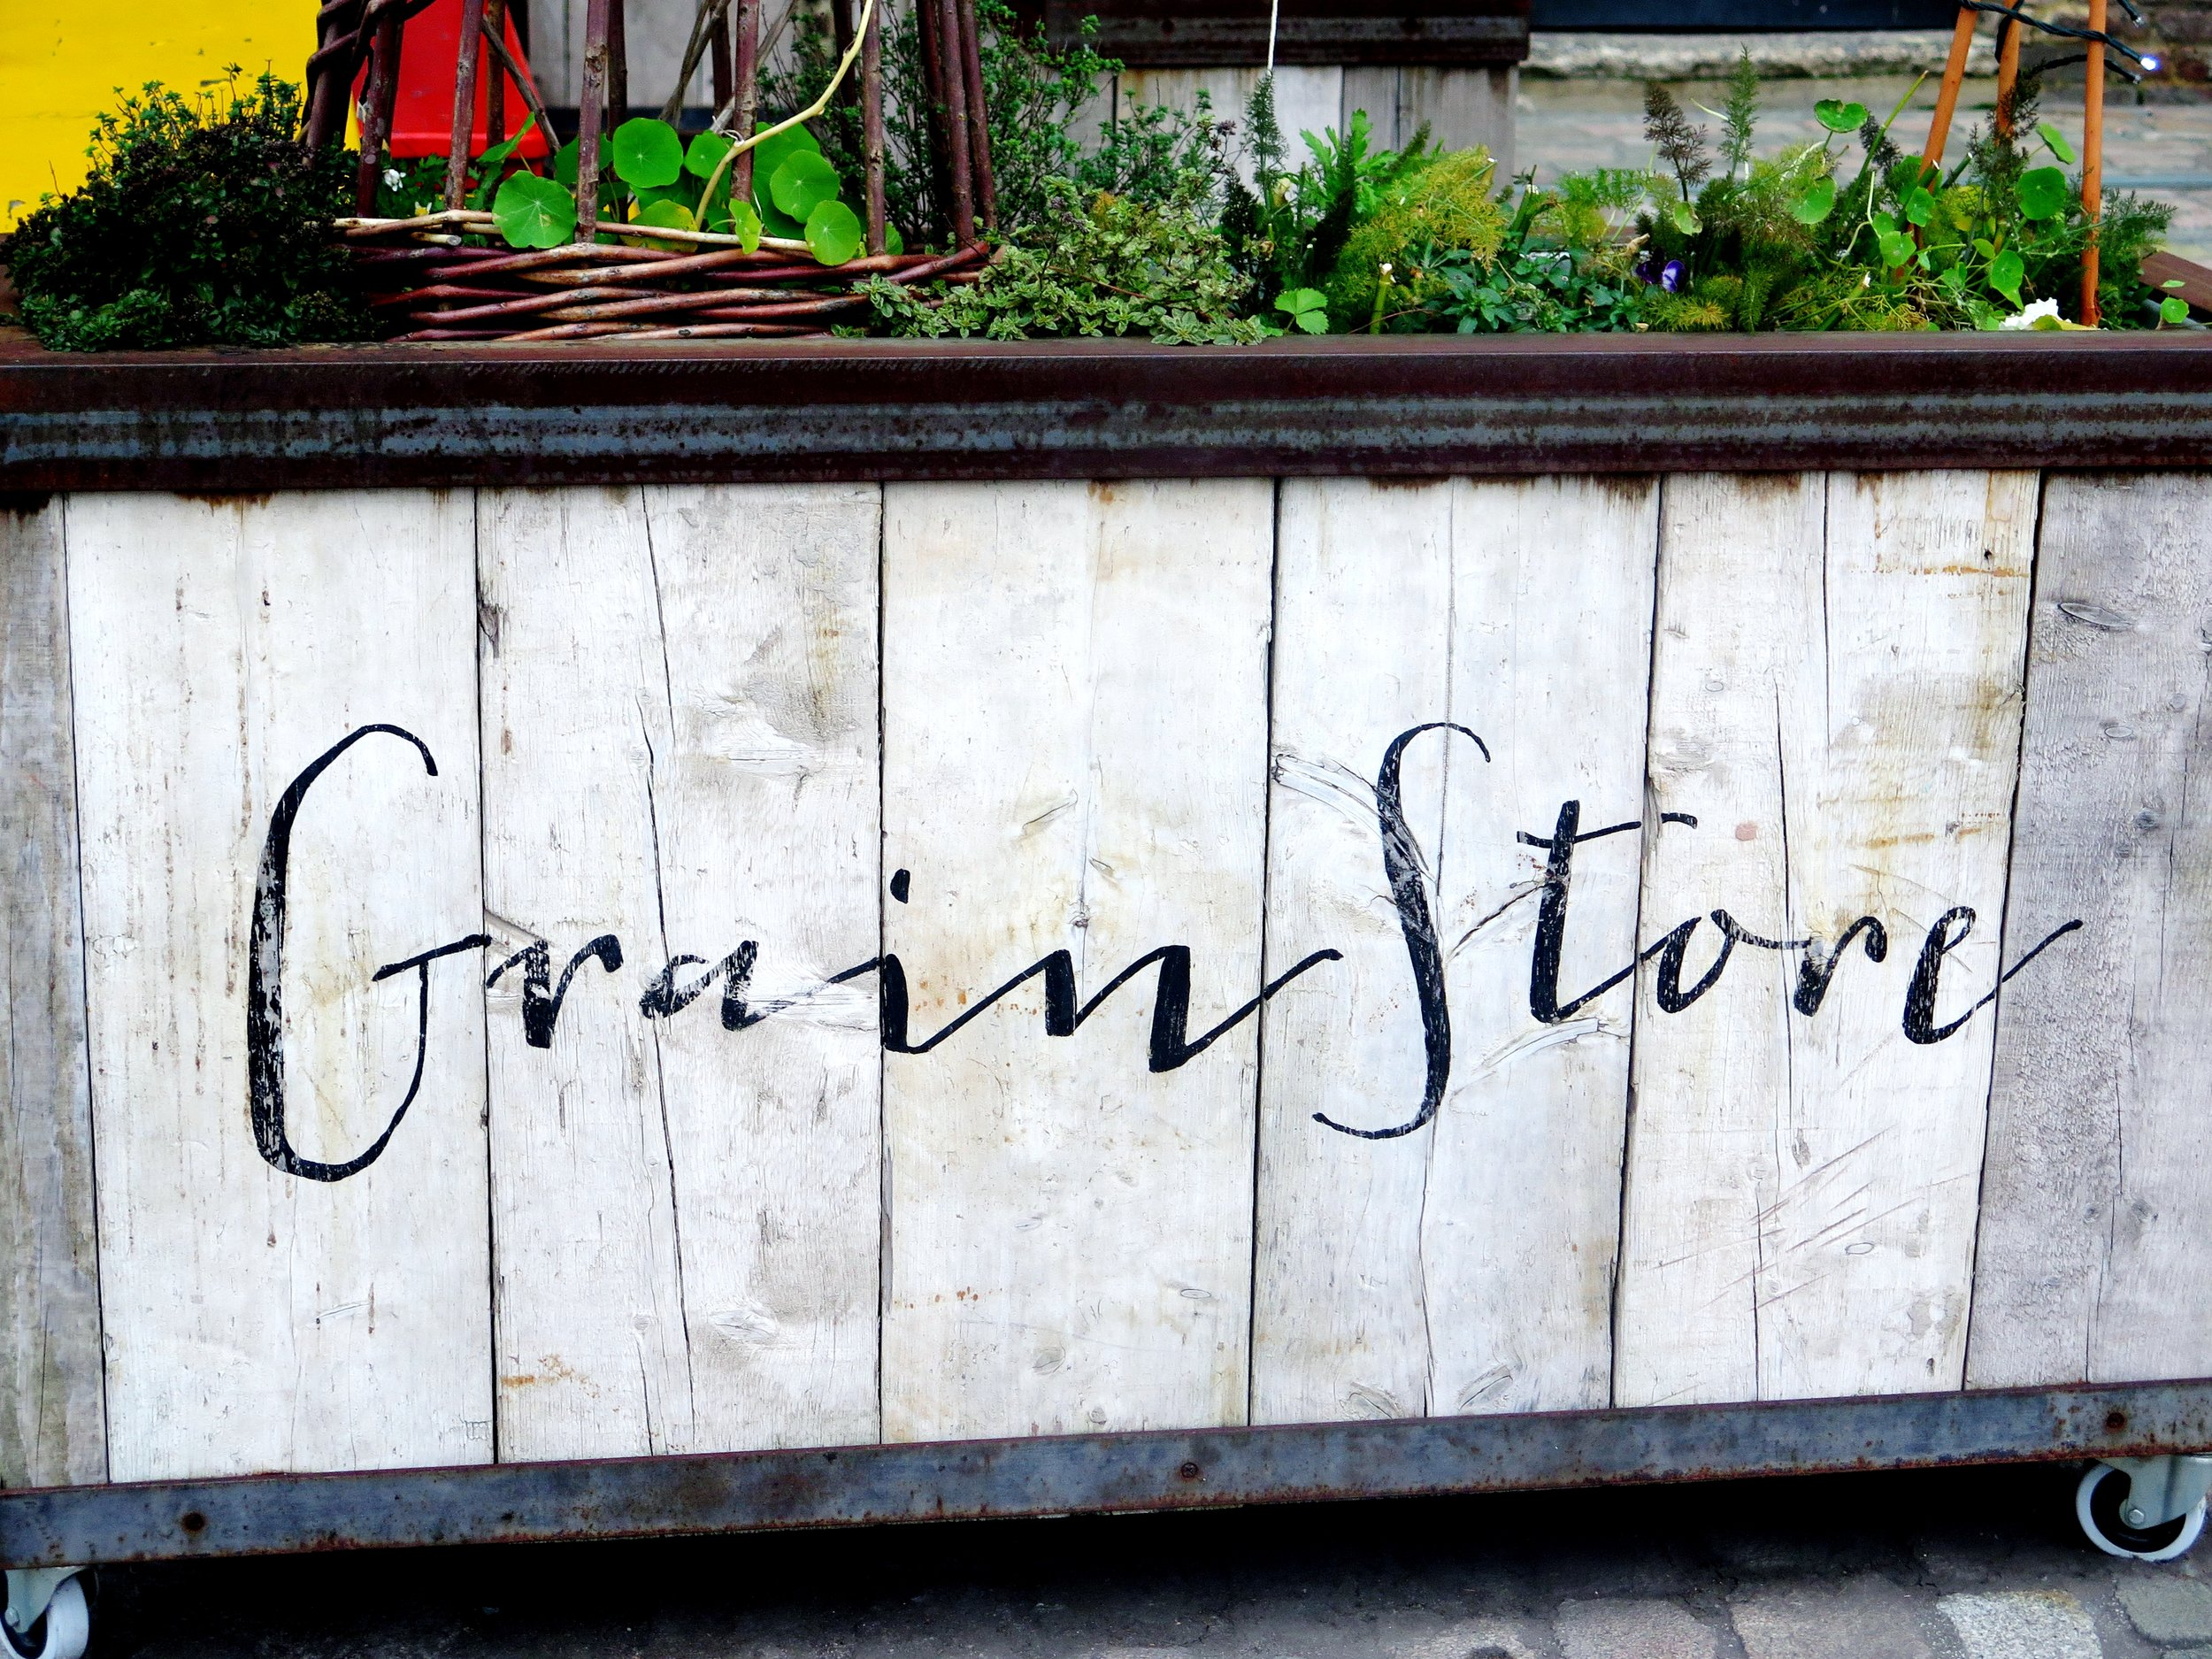 The Grain Store - Restaurant Review